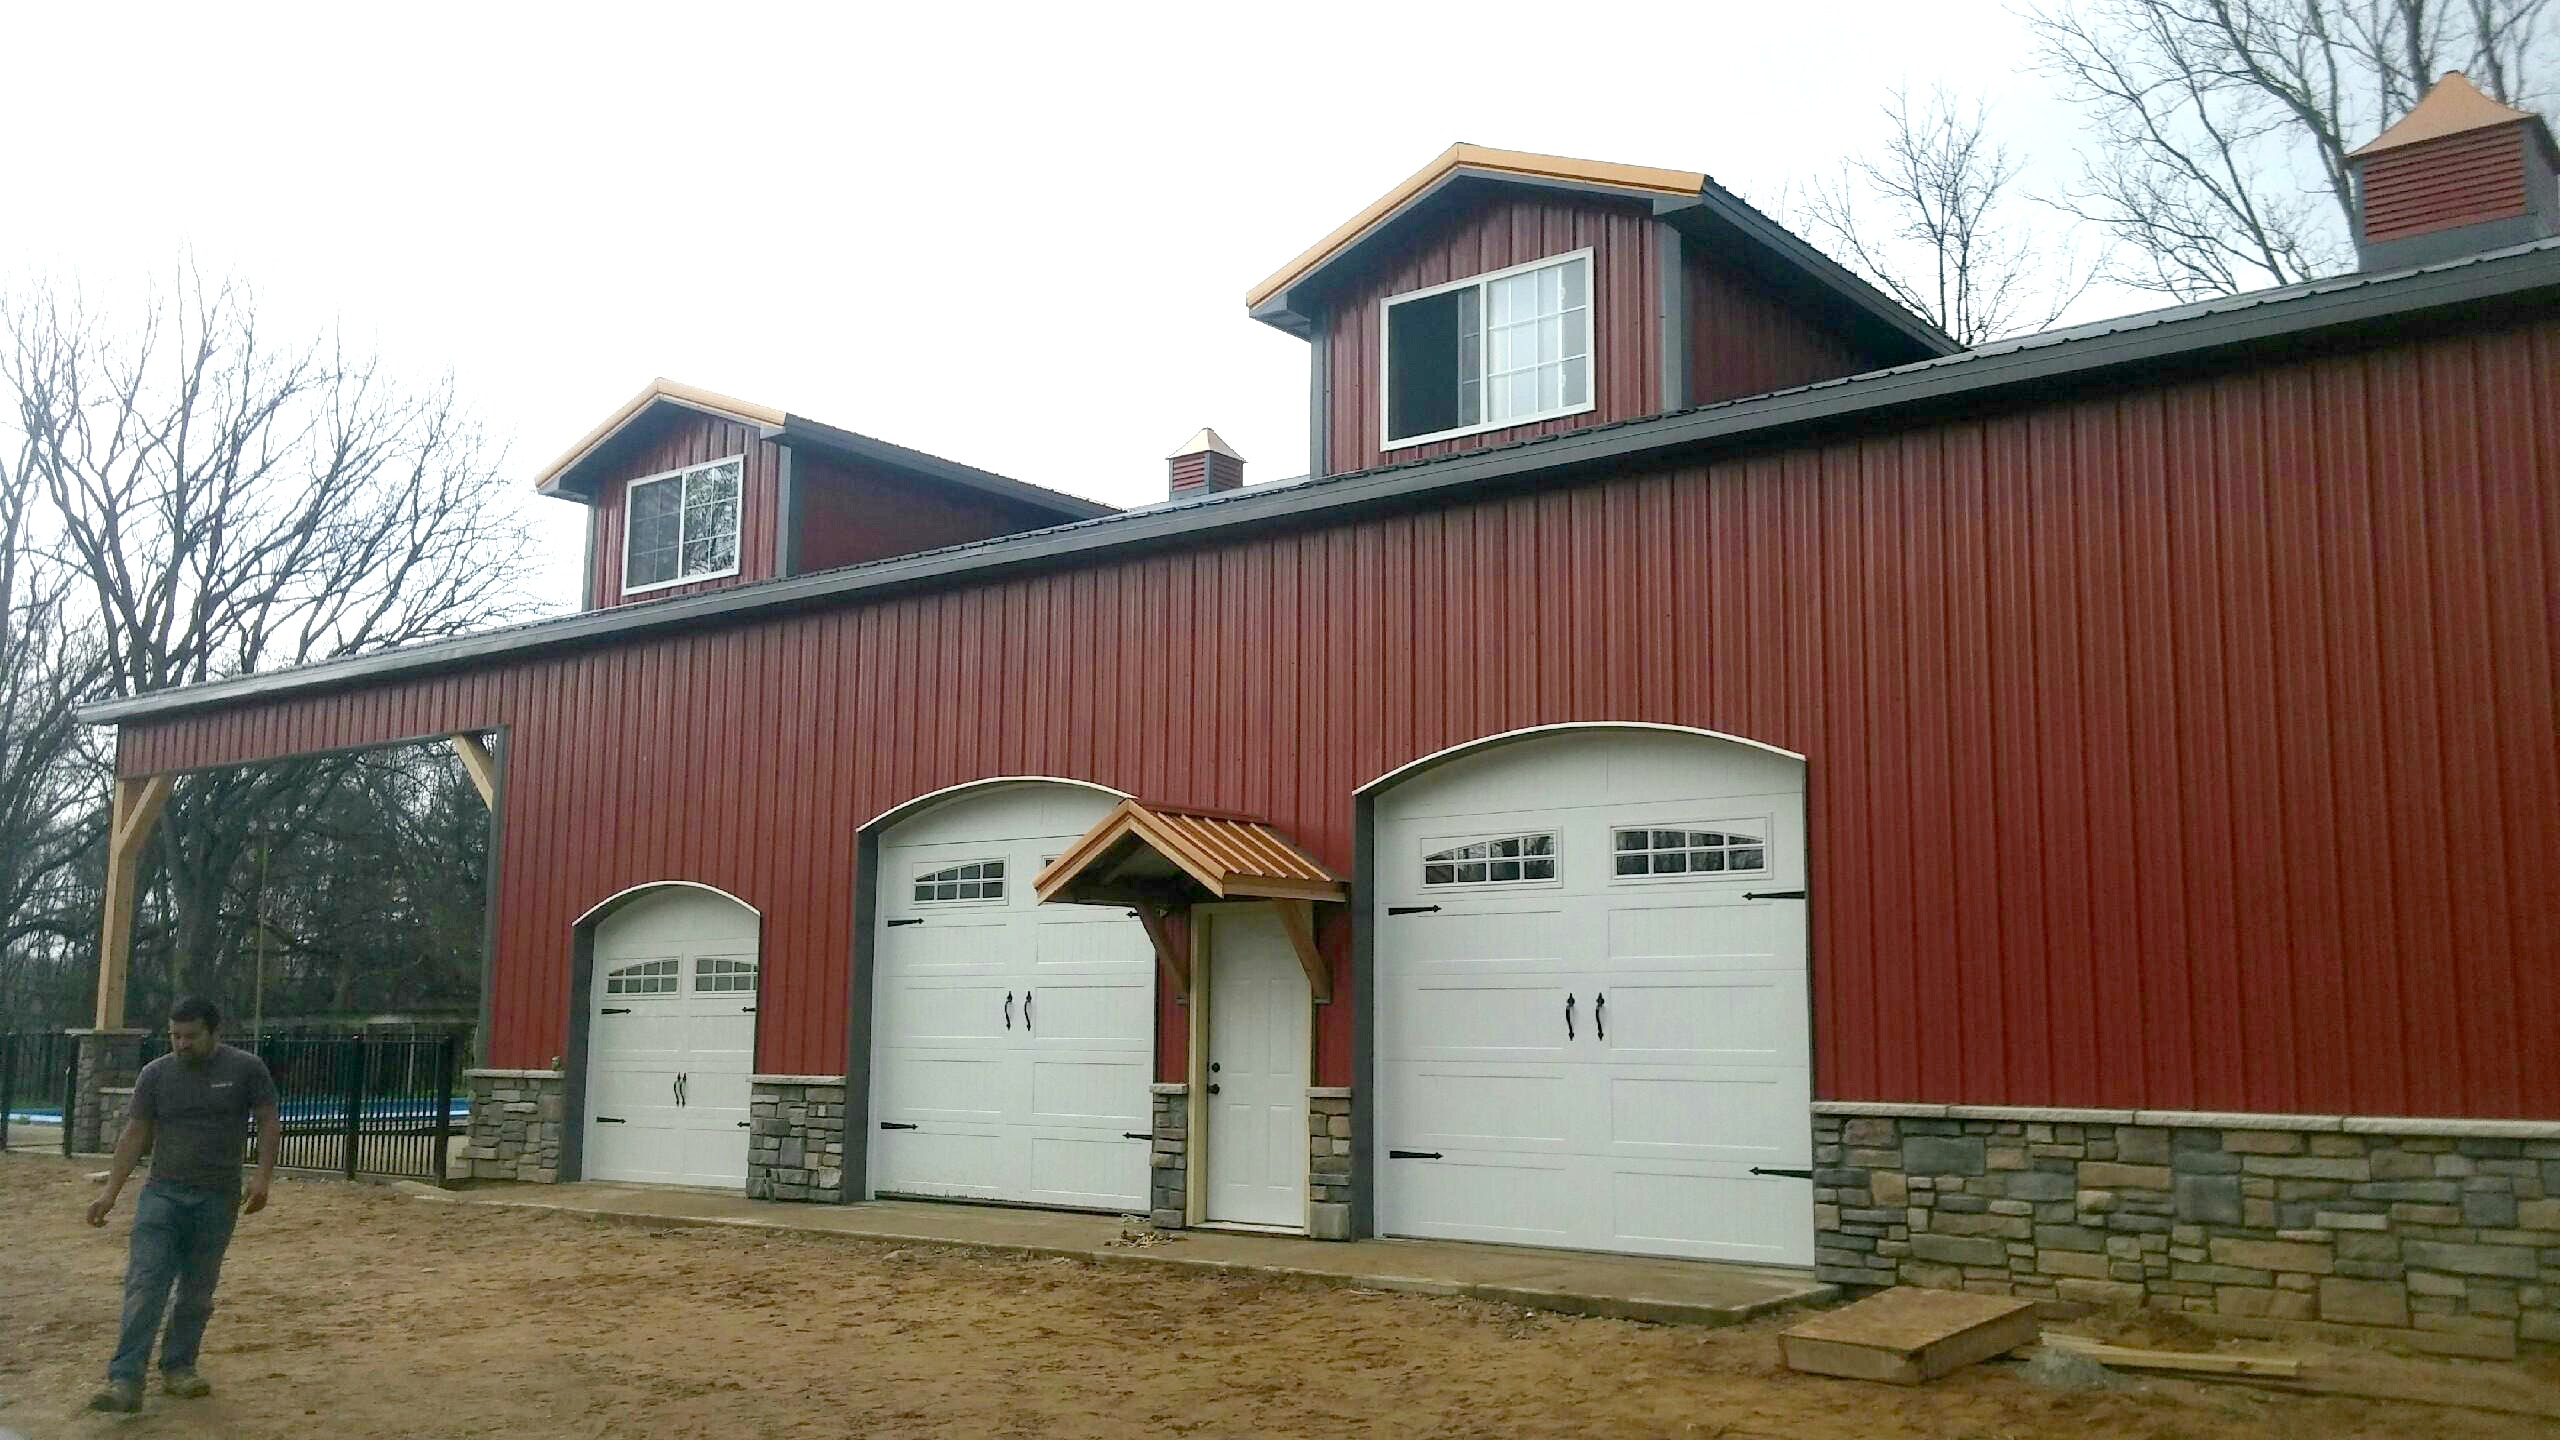 Decorative options for your pole barn | MilMar Pole Buildings on most beautiful house designs, brick house designs, house roof designs, house eave designs, house gable designs,